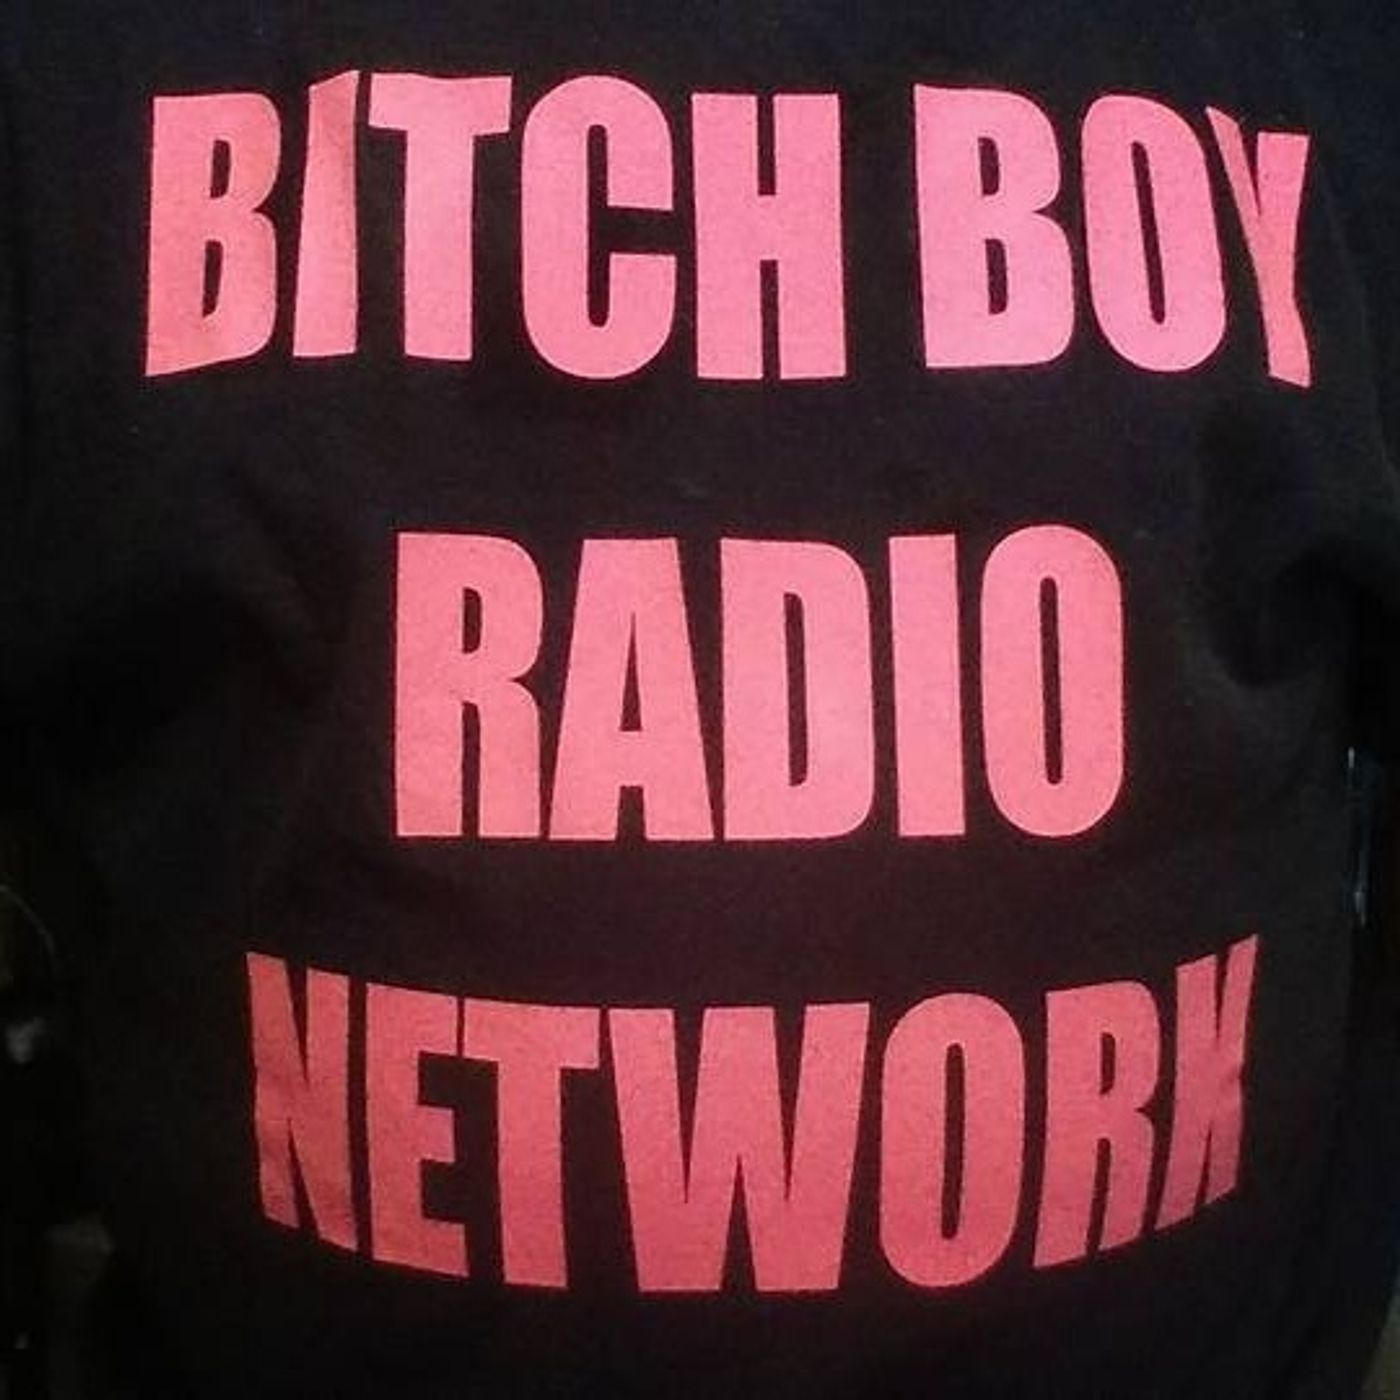 BITCH BOY RADIO NETWORK